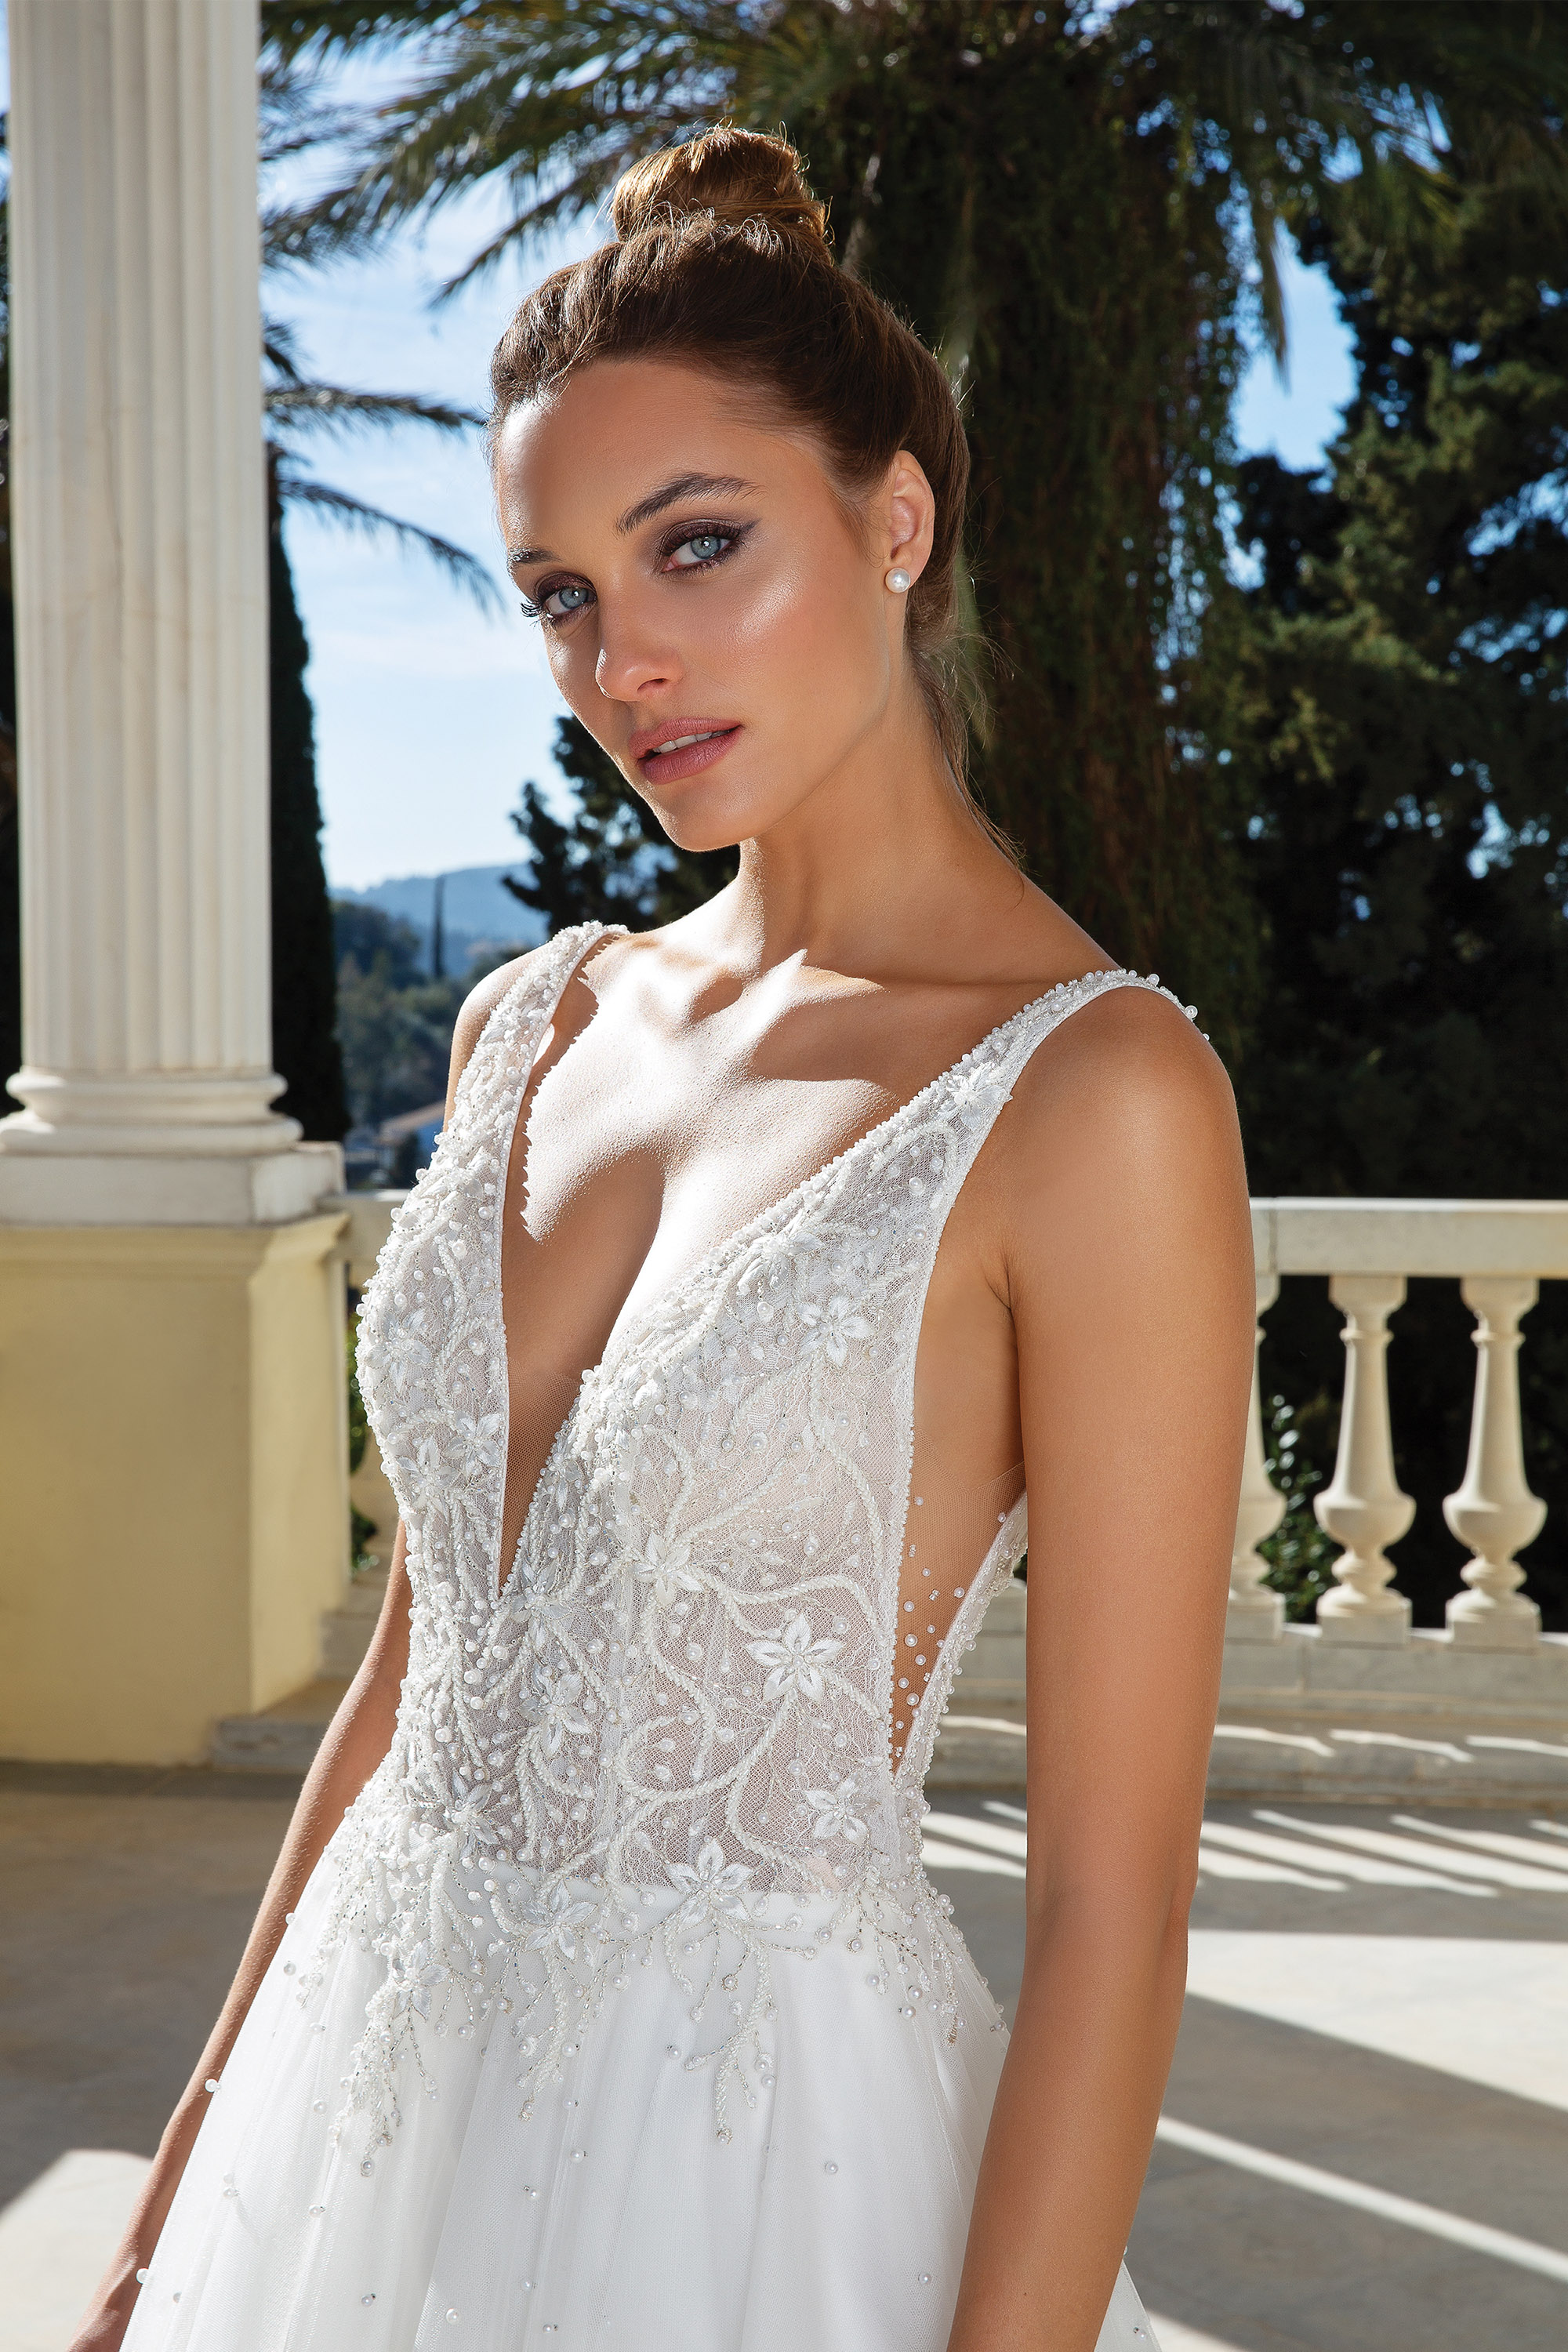 Embroidered, v-neck wedding dress from the waist up